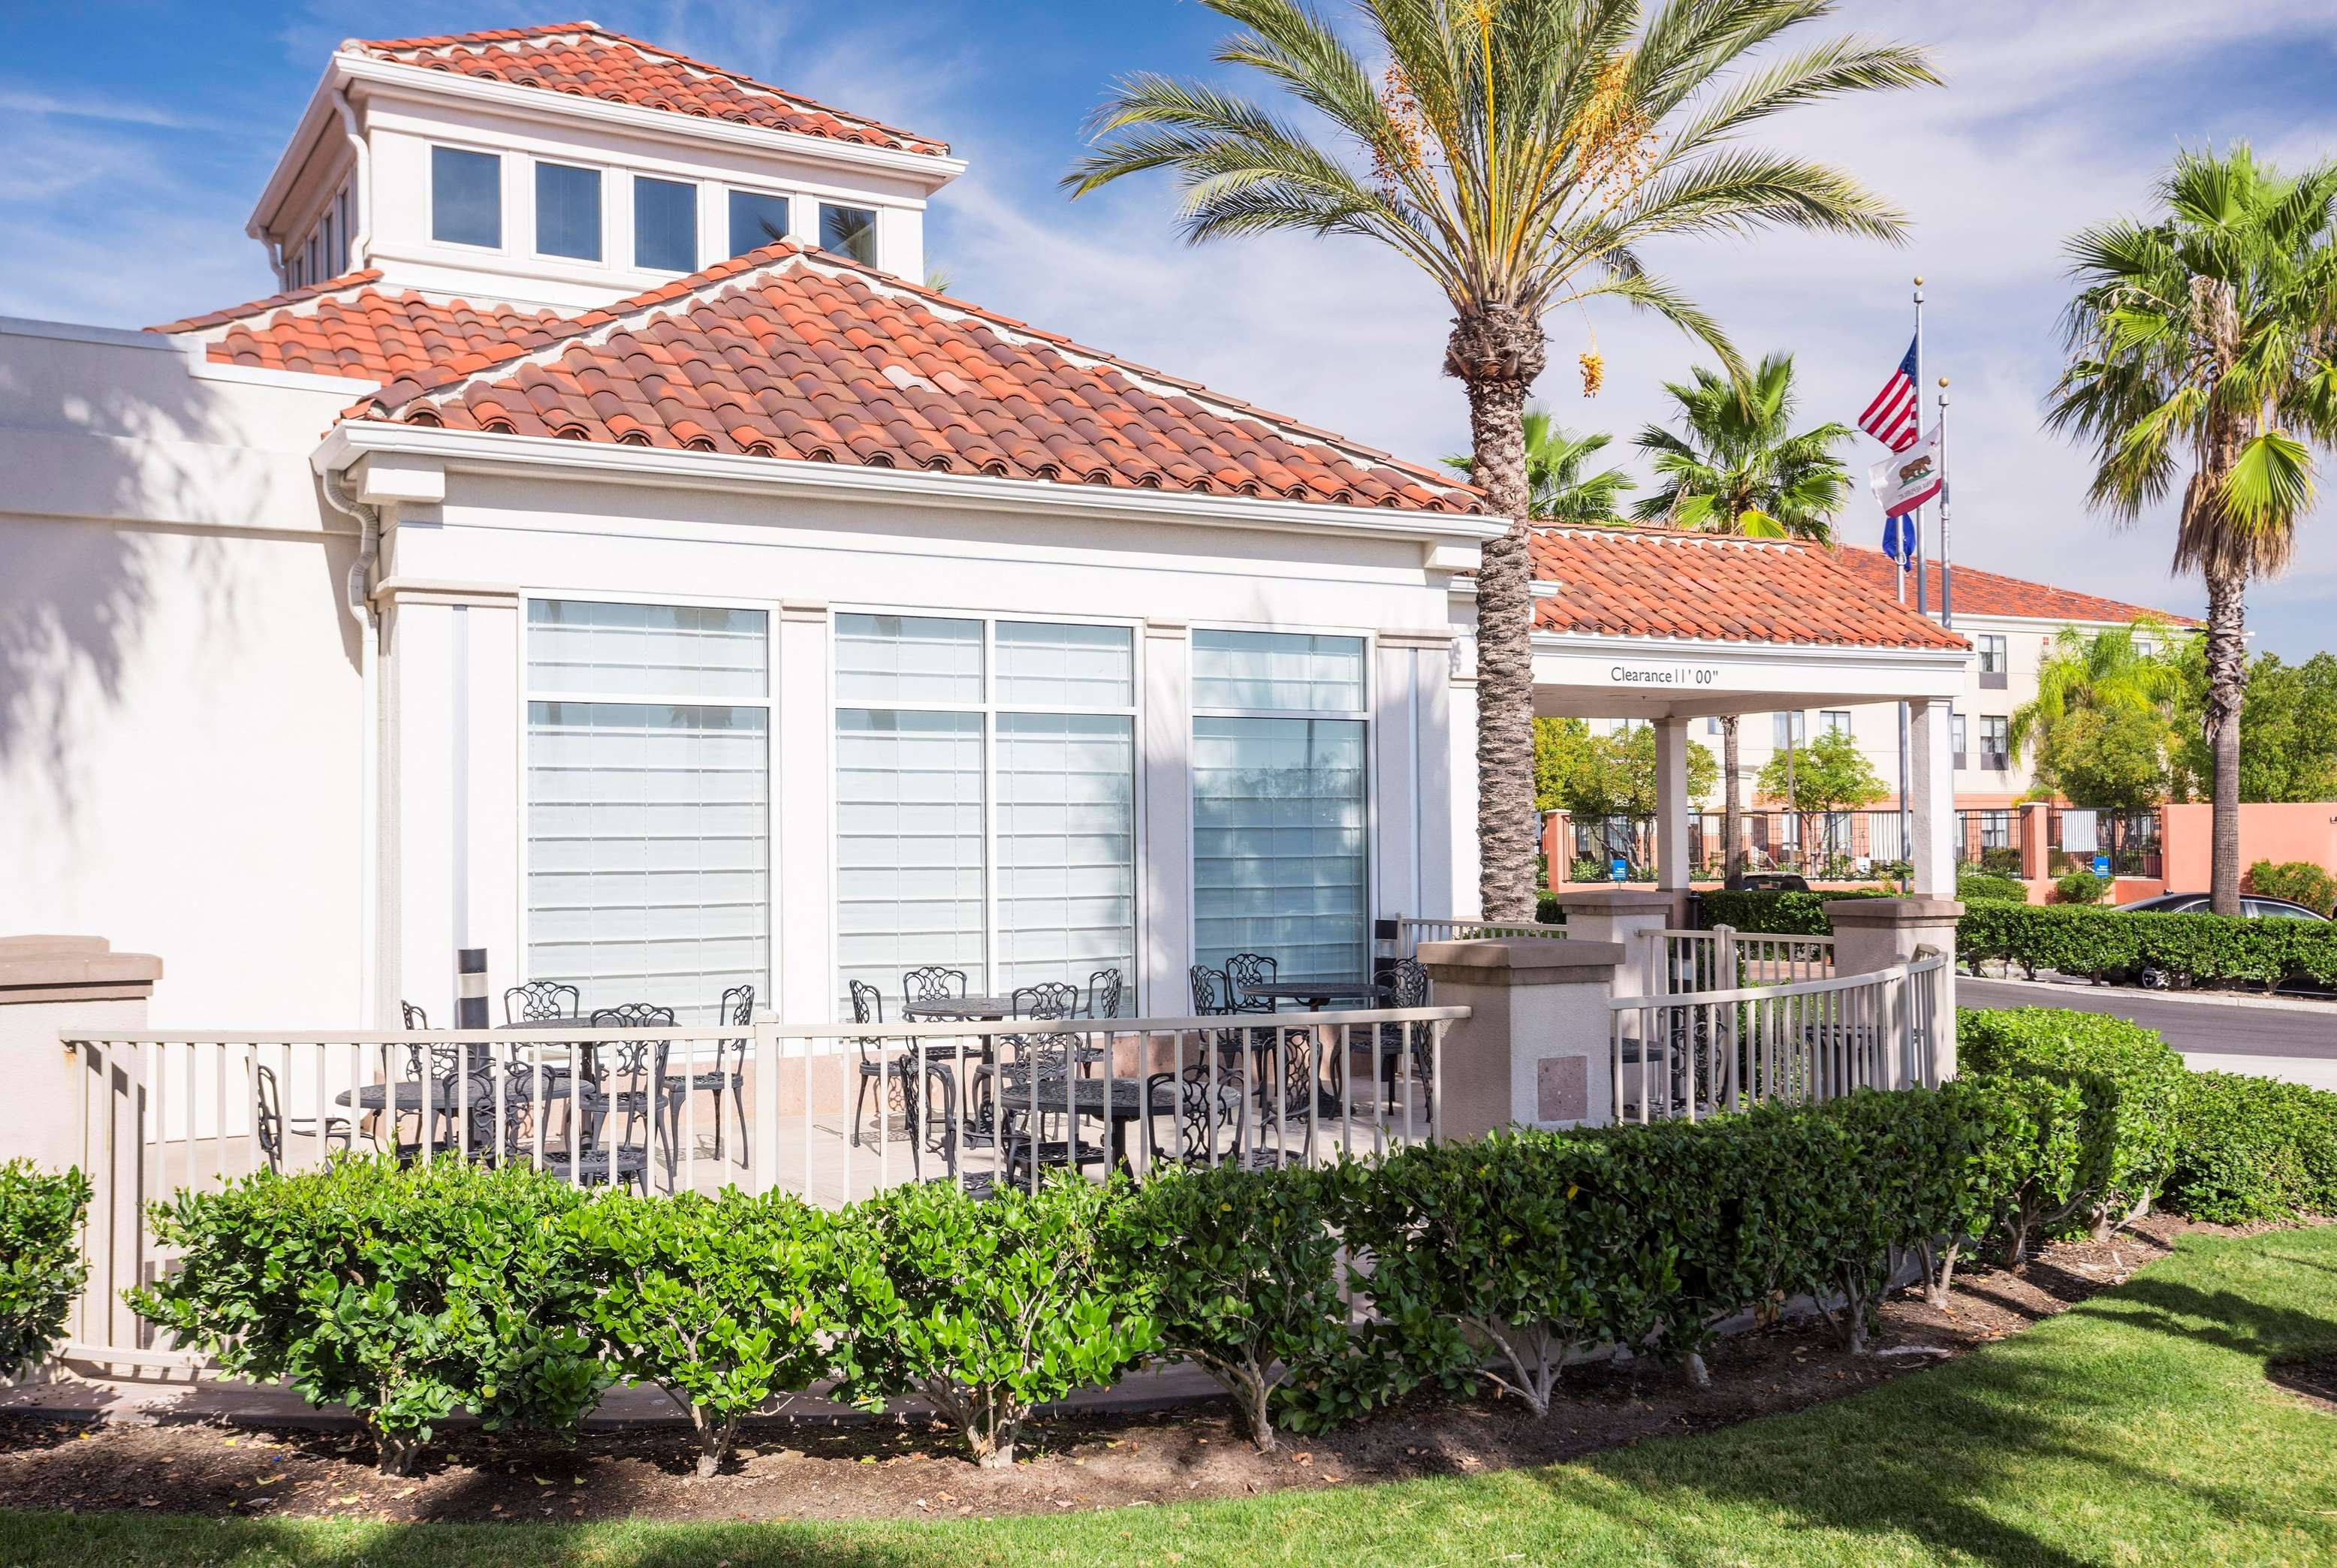 Hilton garden inn irvine east lake forest foothill ranch california ca for Hilton garden inn foothill ranch